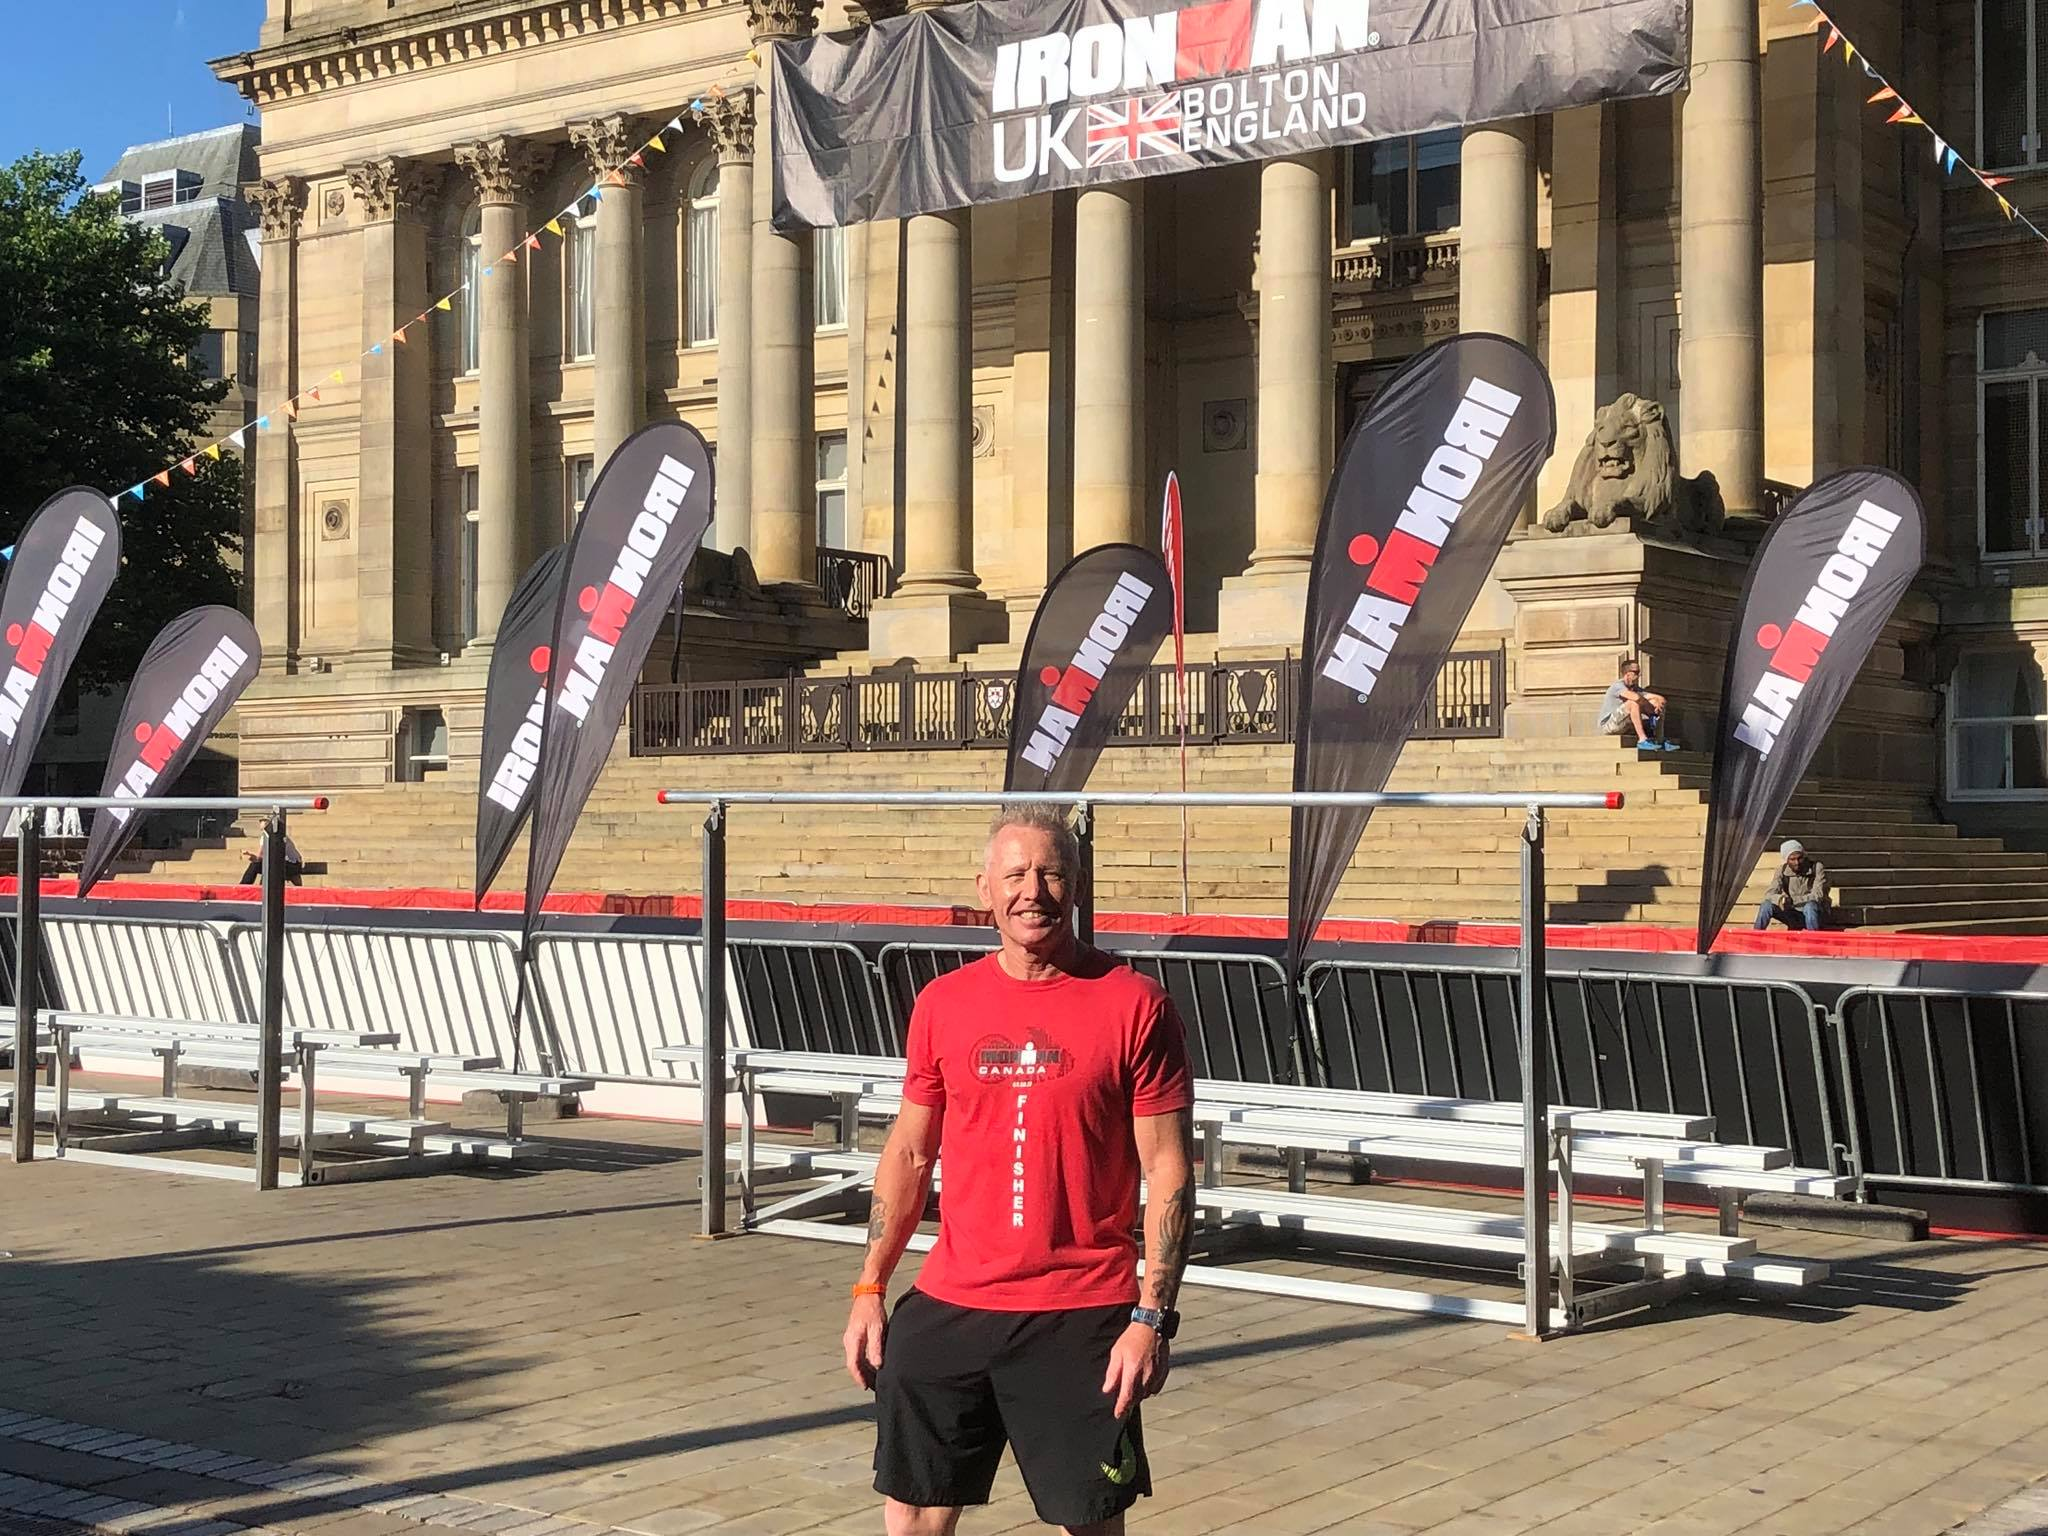 Coach_Terry_Wilson_Pursuit_of_The_Perfect_Race_IRONMAN_Bolton_United_Kingdom_Kevin_Nuun_Transition_Pre_Race_Fun.jpg